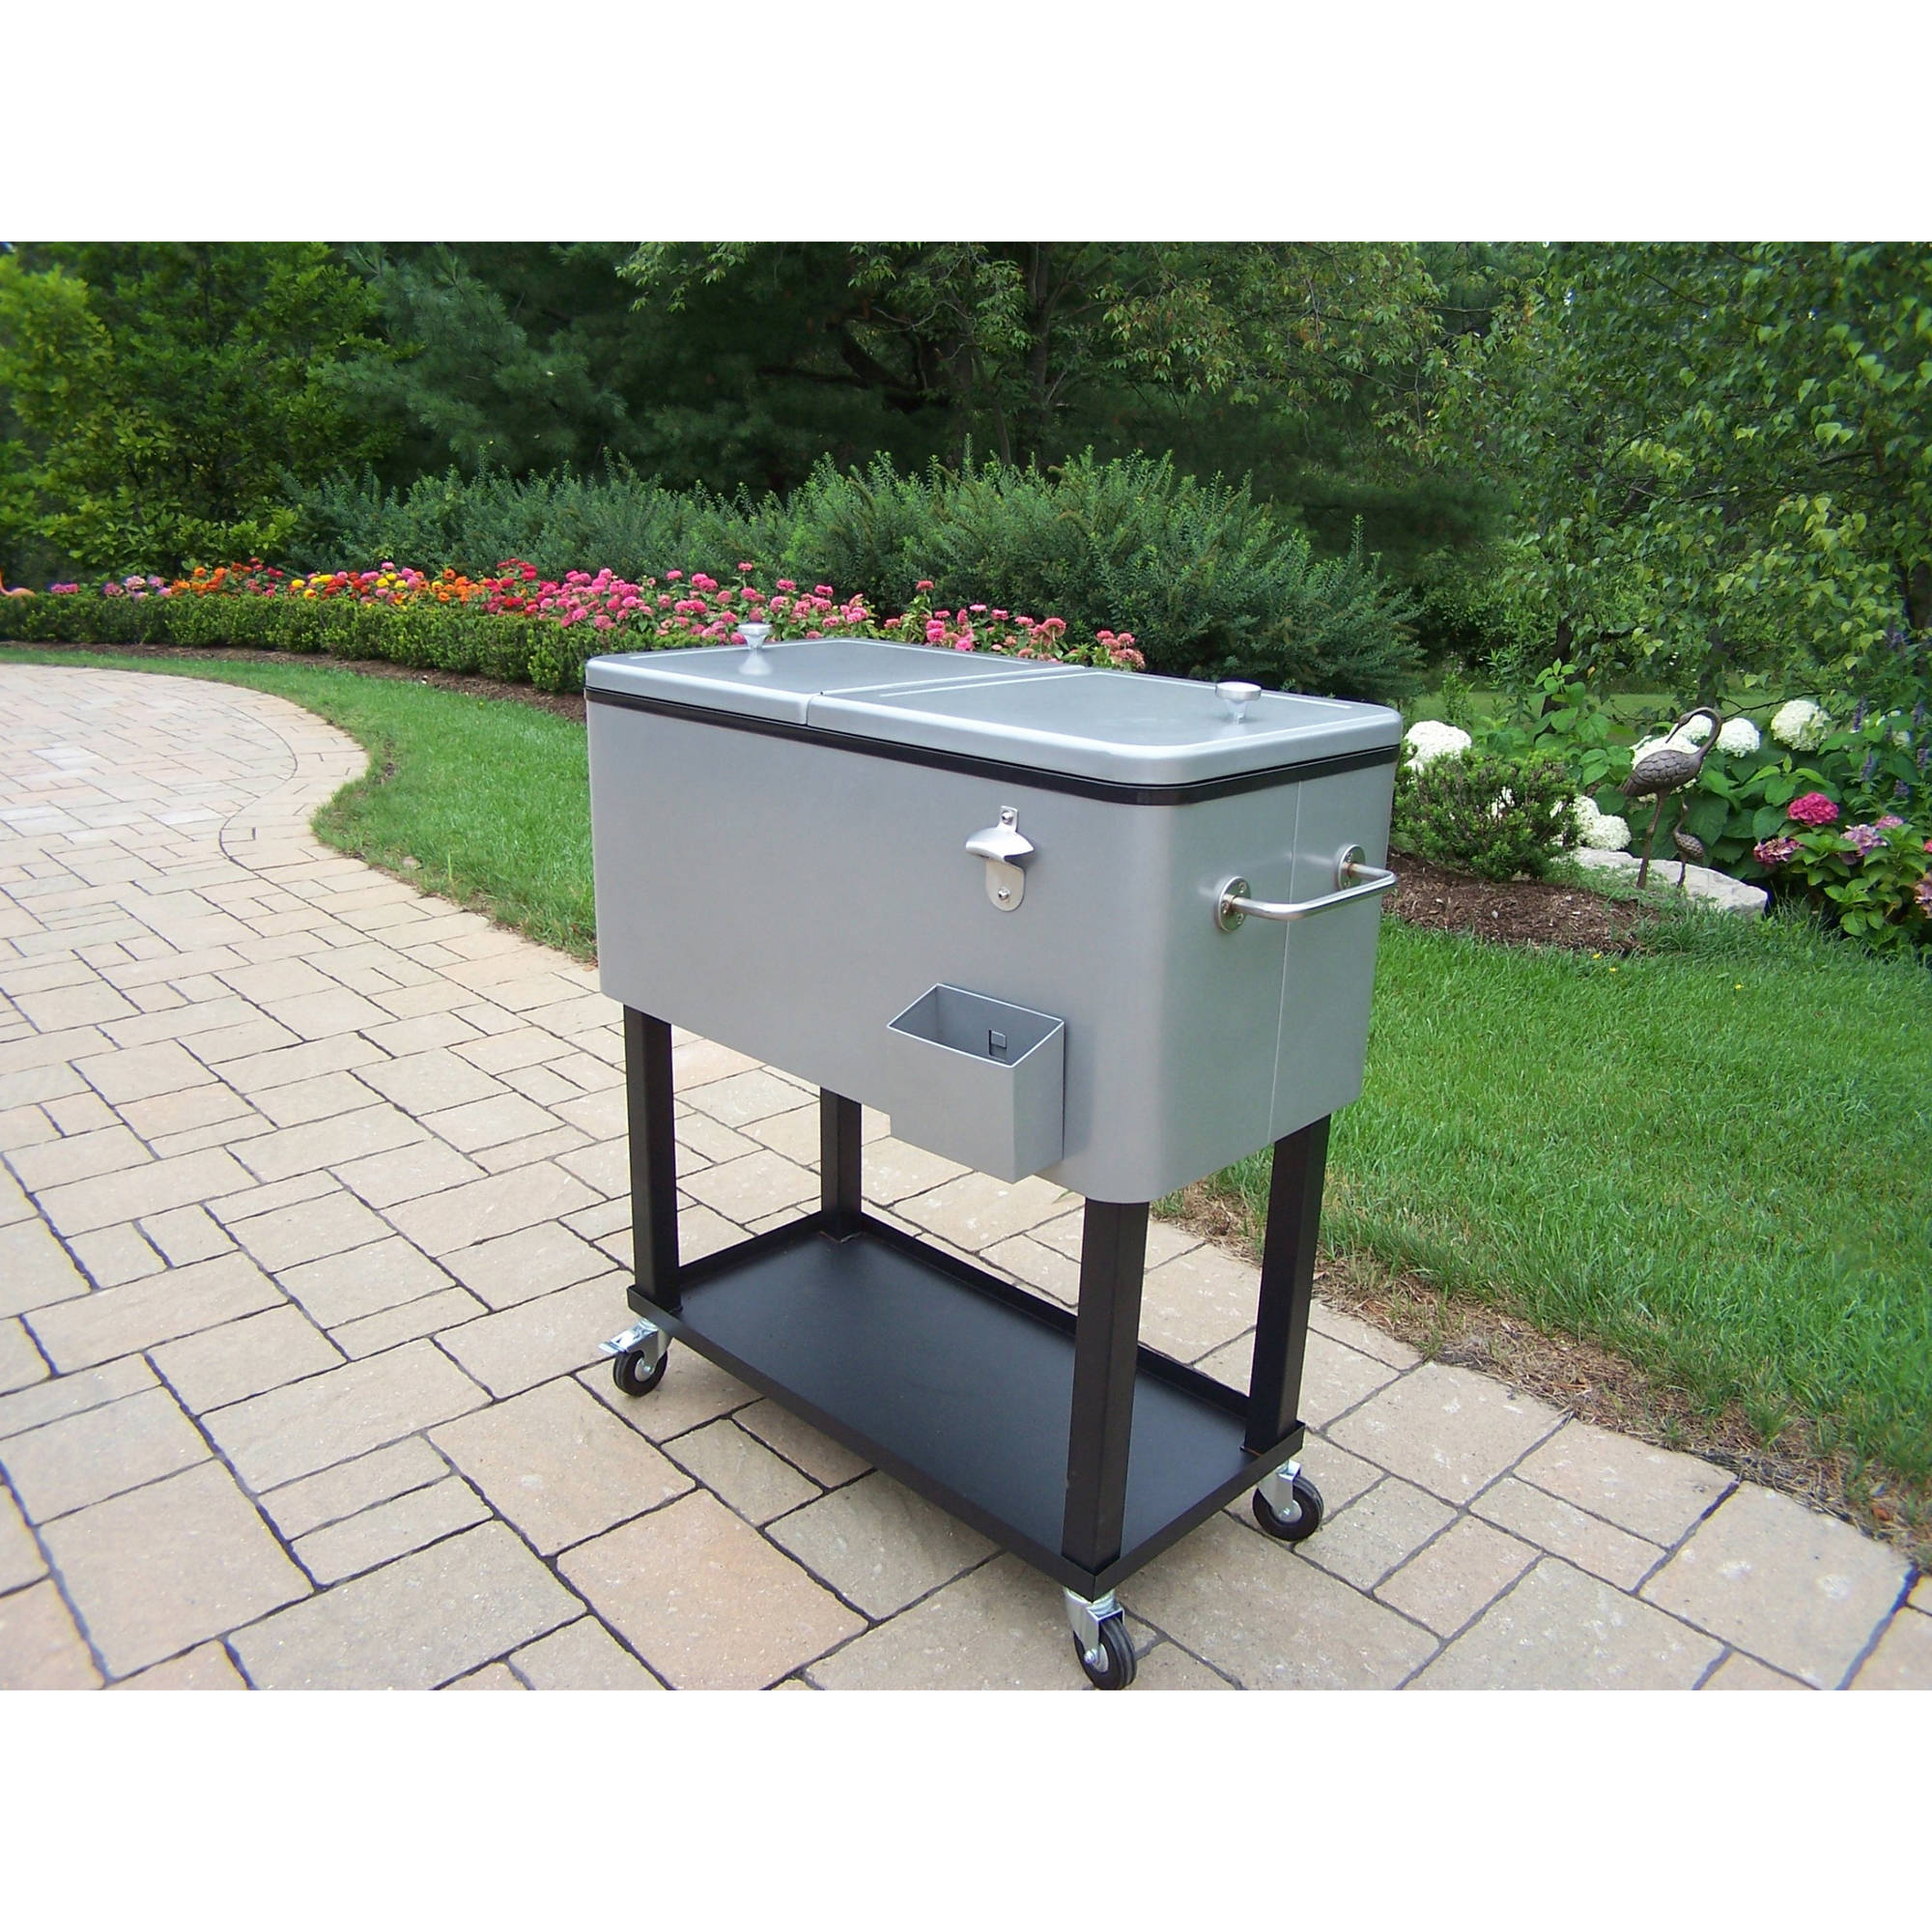 rolling quart bhp cooler black chest ice portable ebay outdoor coolers party patio cart steel